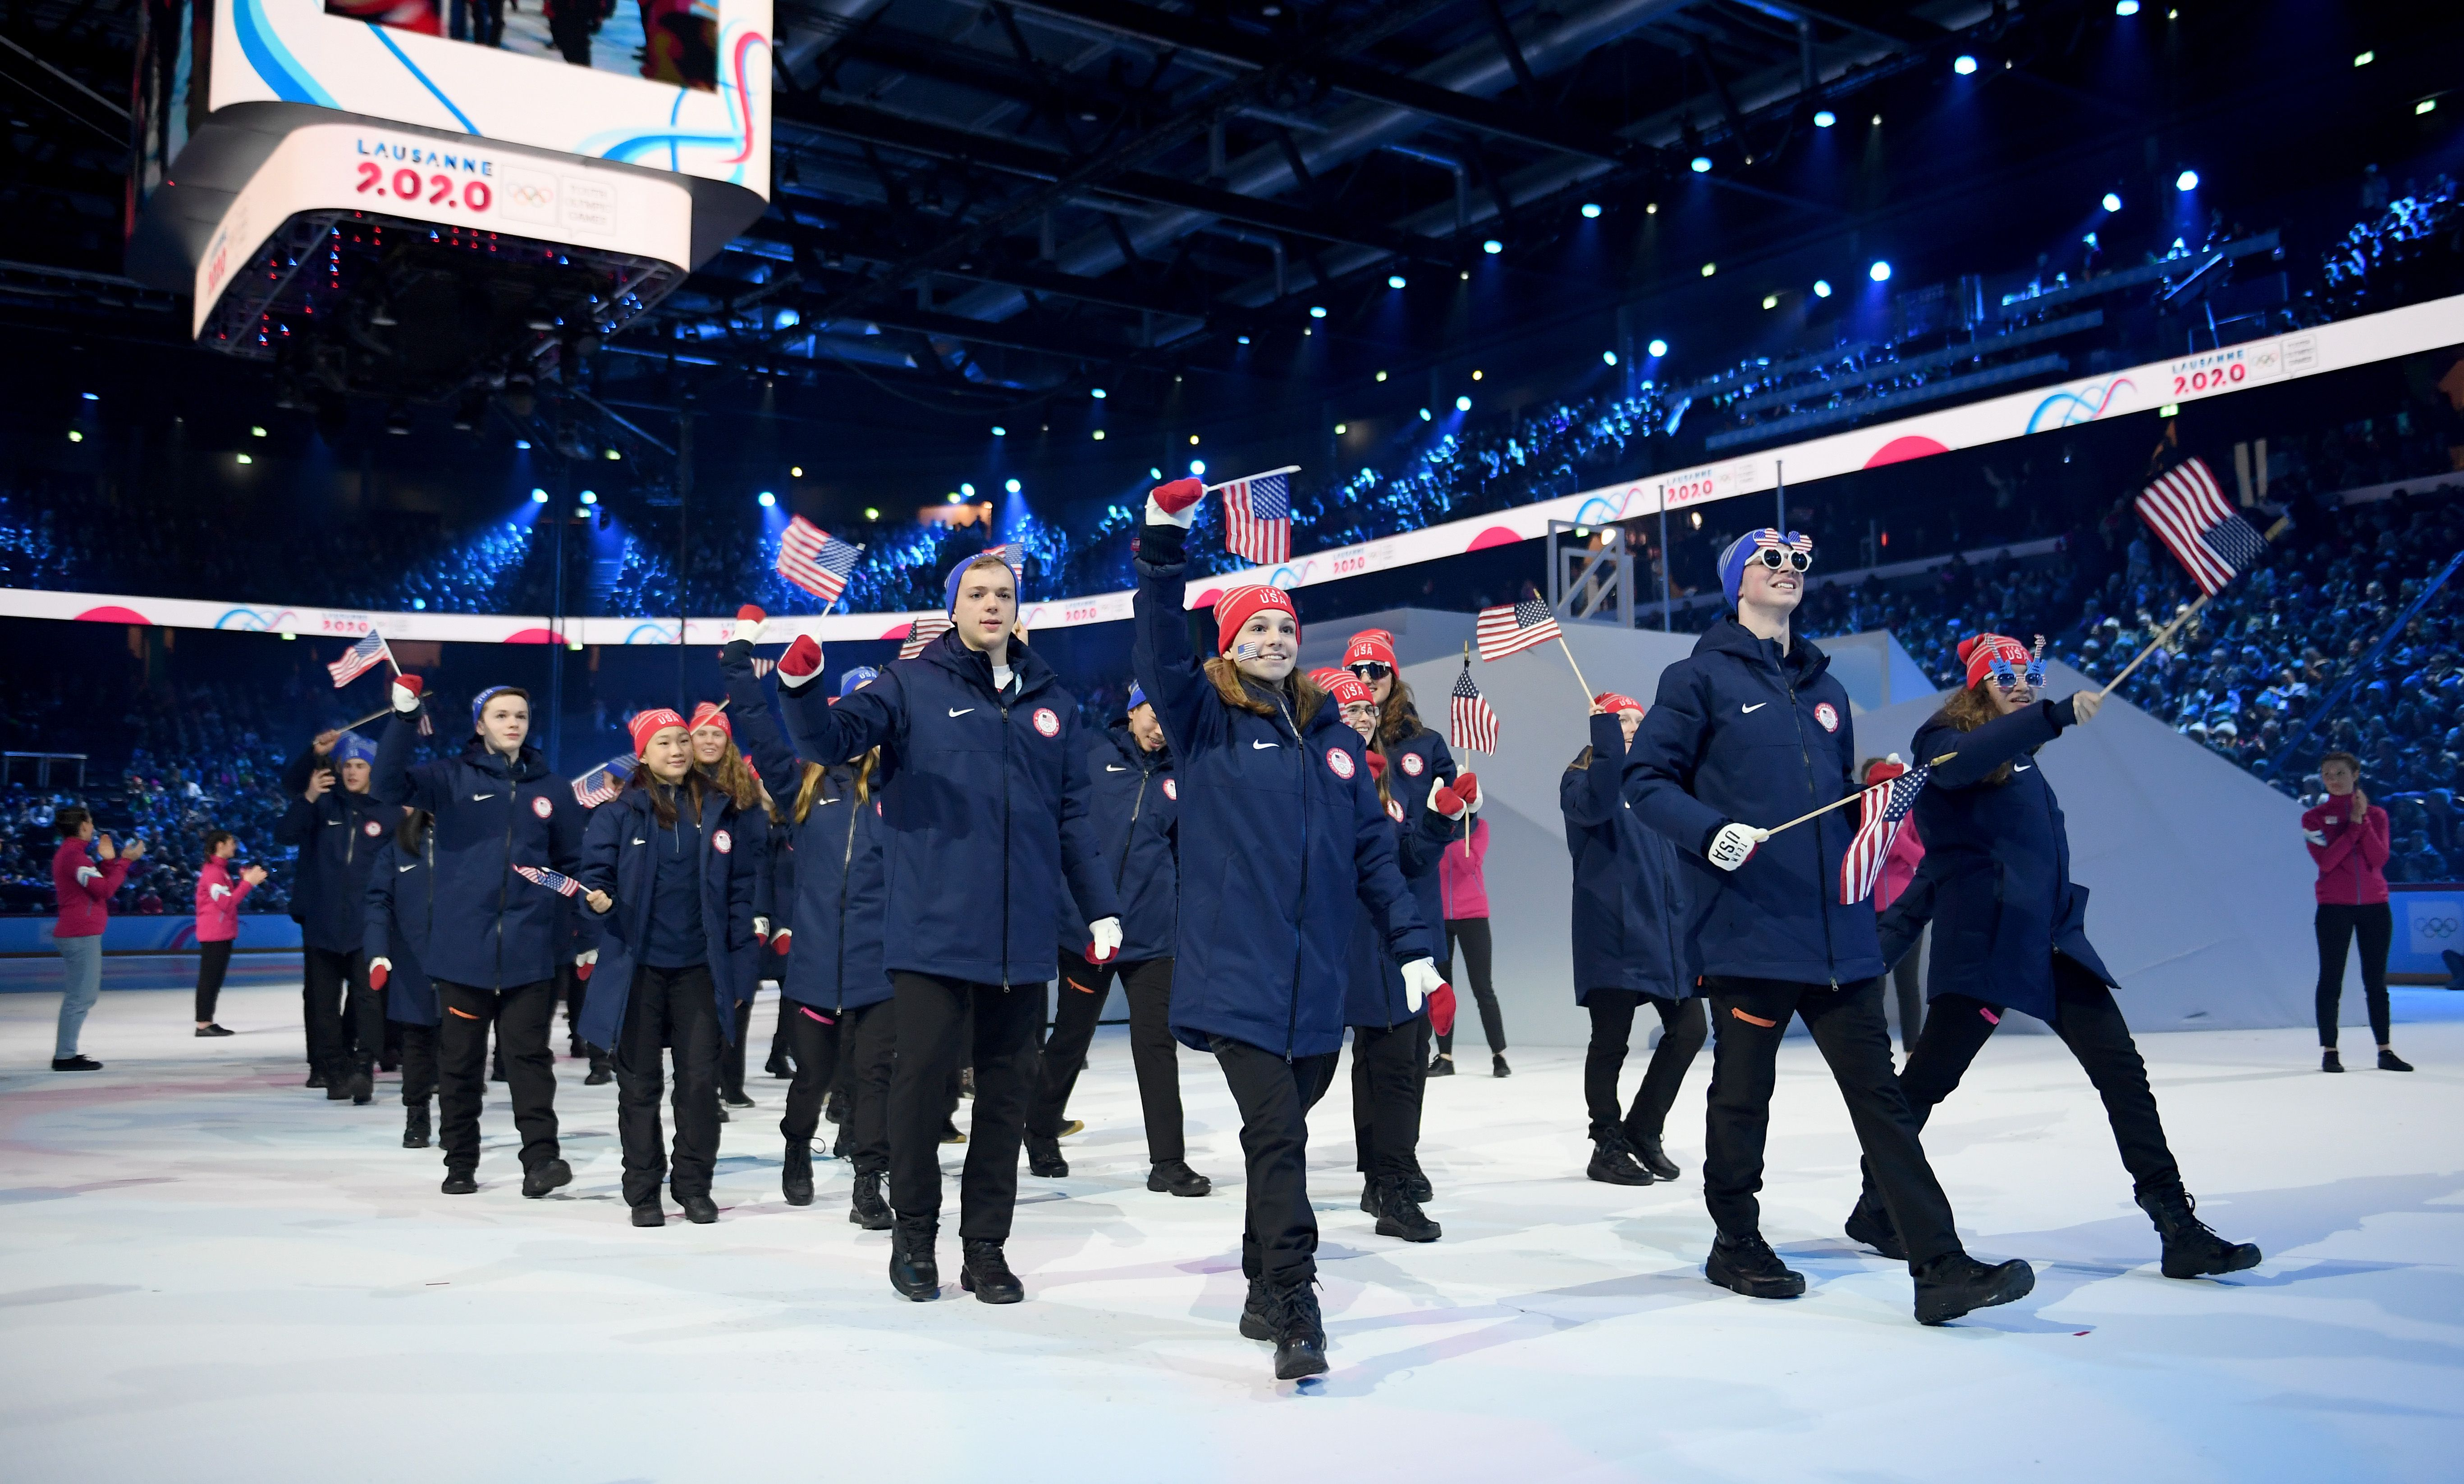 Team USA walking at the Opening Ceremony